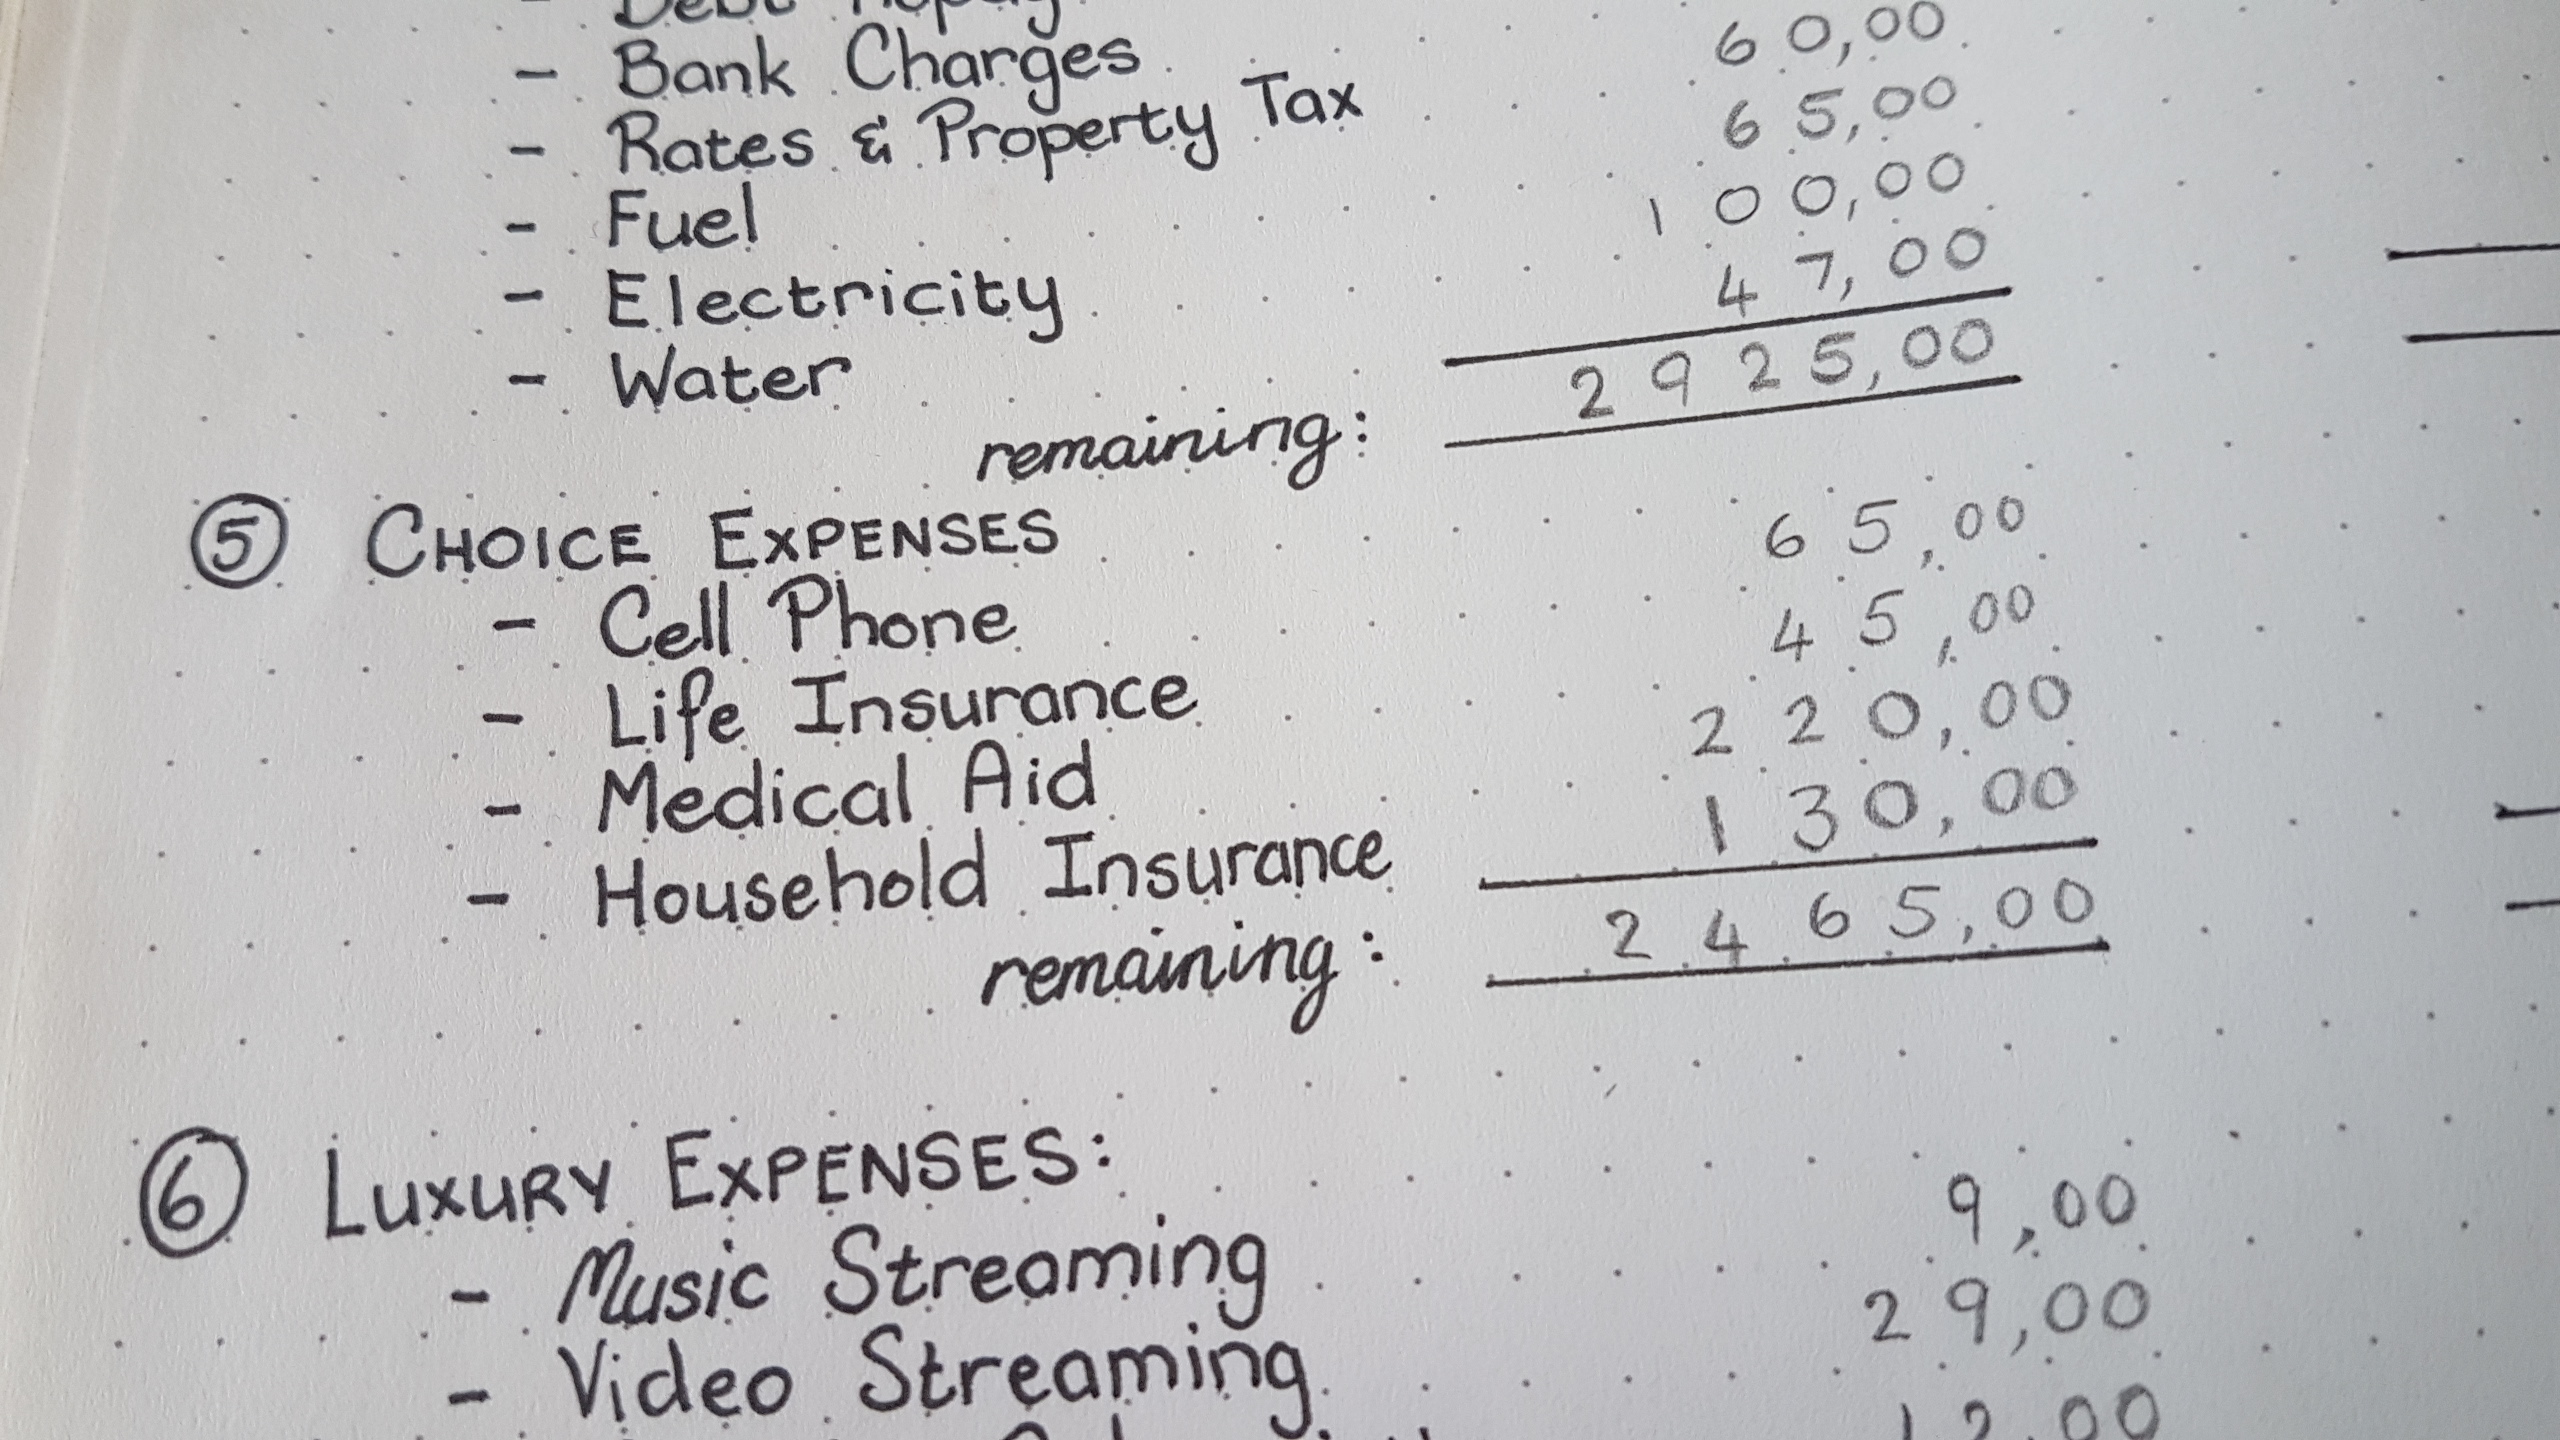 Personal Budget: Choice Payments